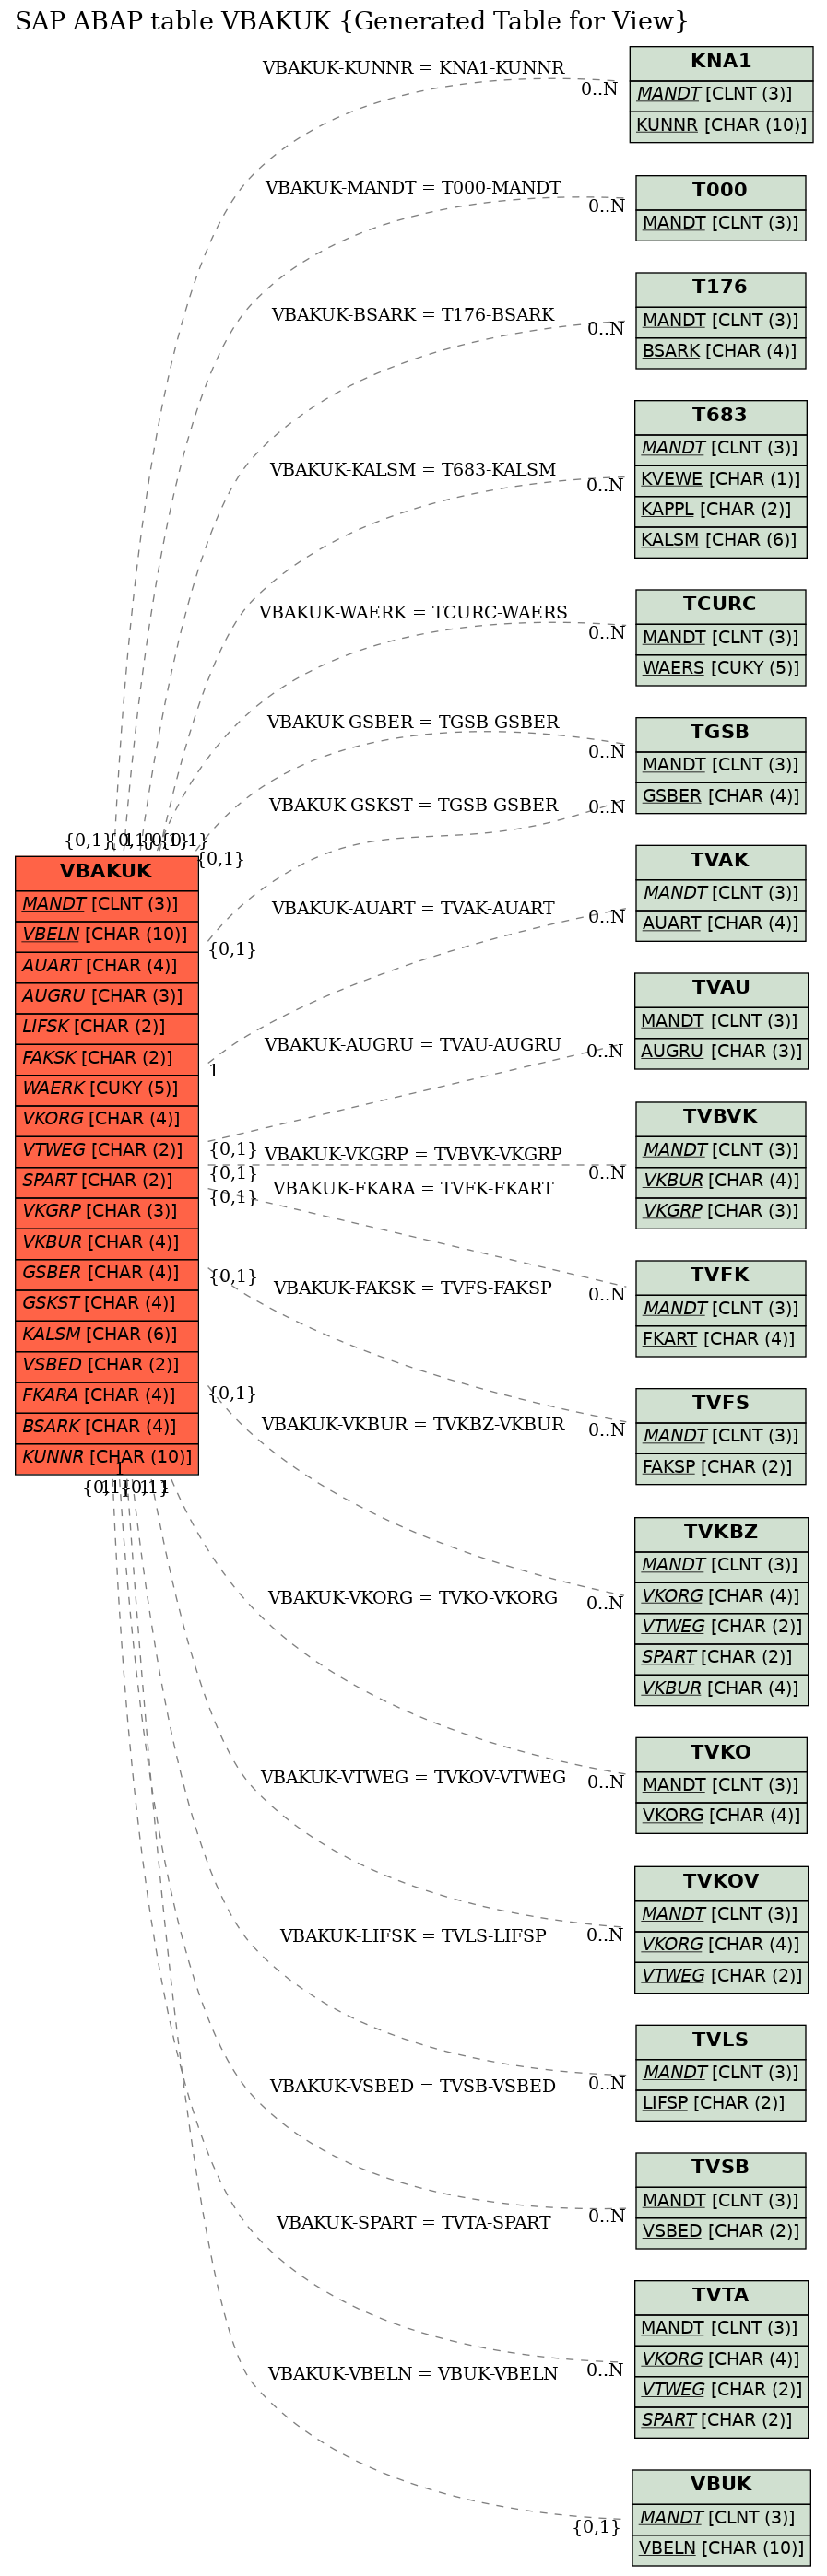 SAP ABAP Table VBAKUK (Generated Table for View), sap-tables